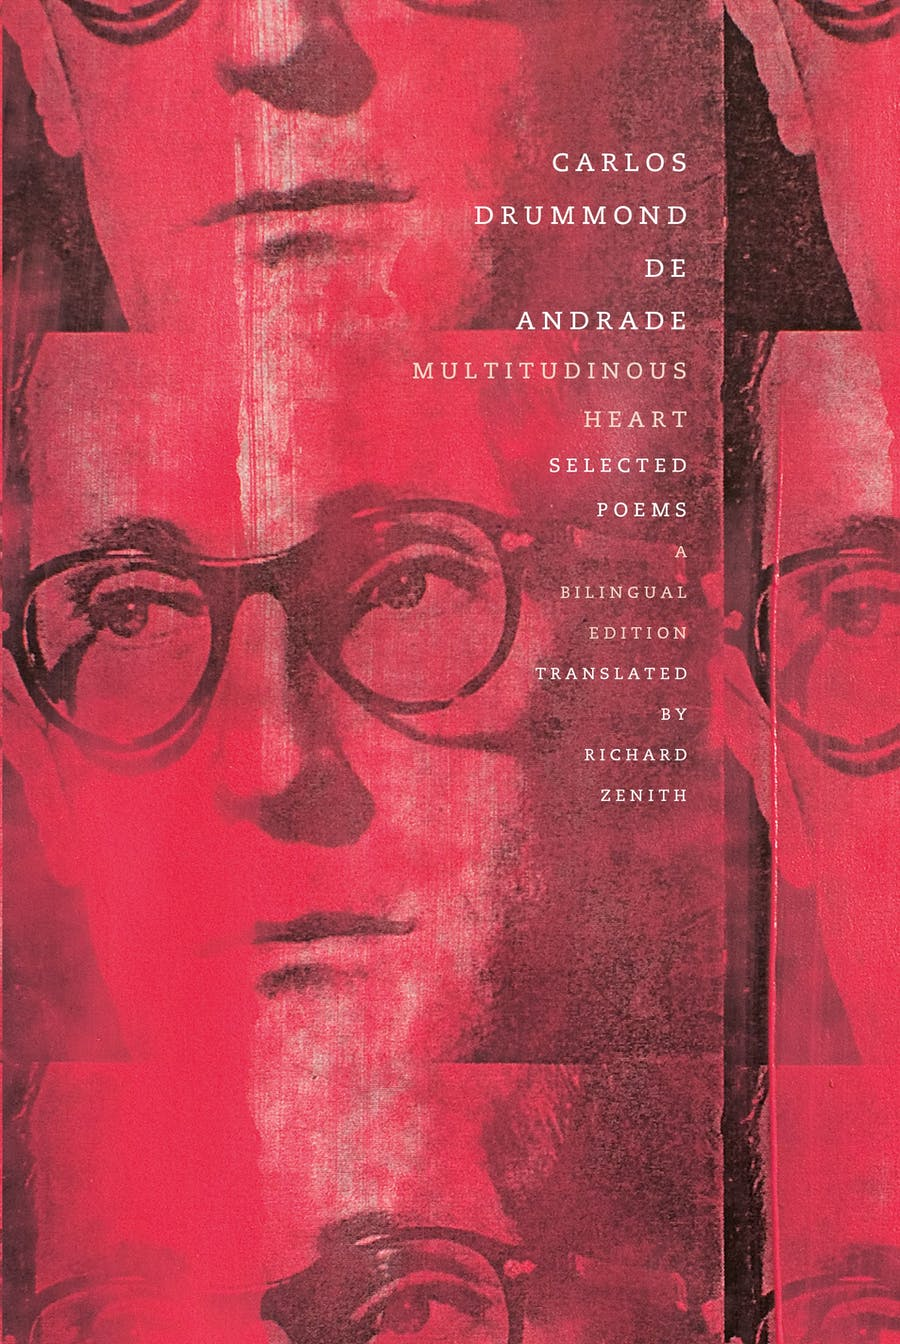 Multitudinous Heart by Carlos Drummond de Andrade; Translated from Portuguese by Richard Zenith